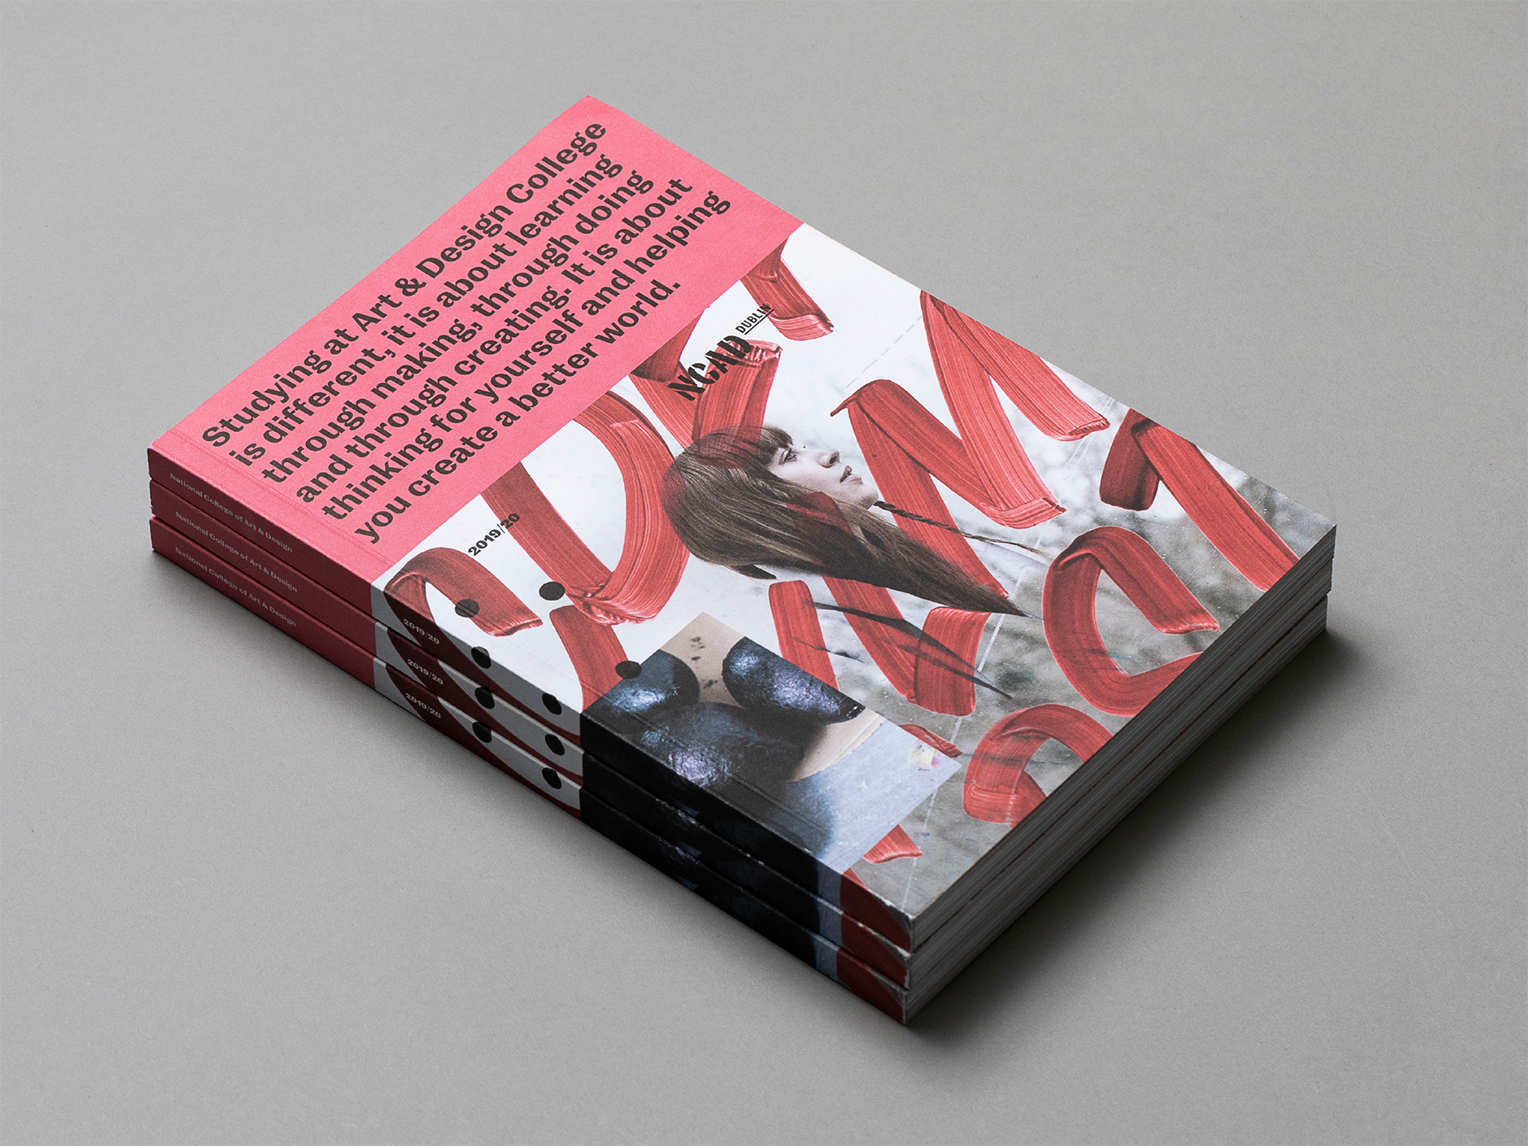 Cover image: NCAD – Prospectus